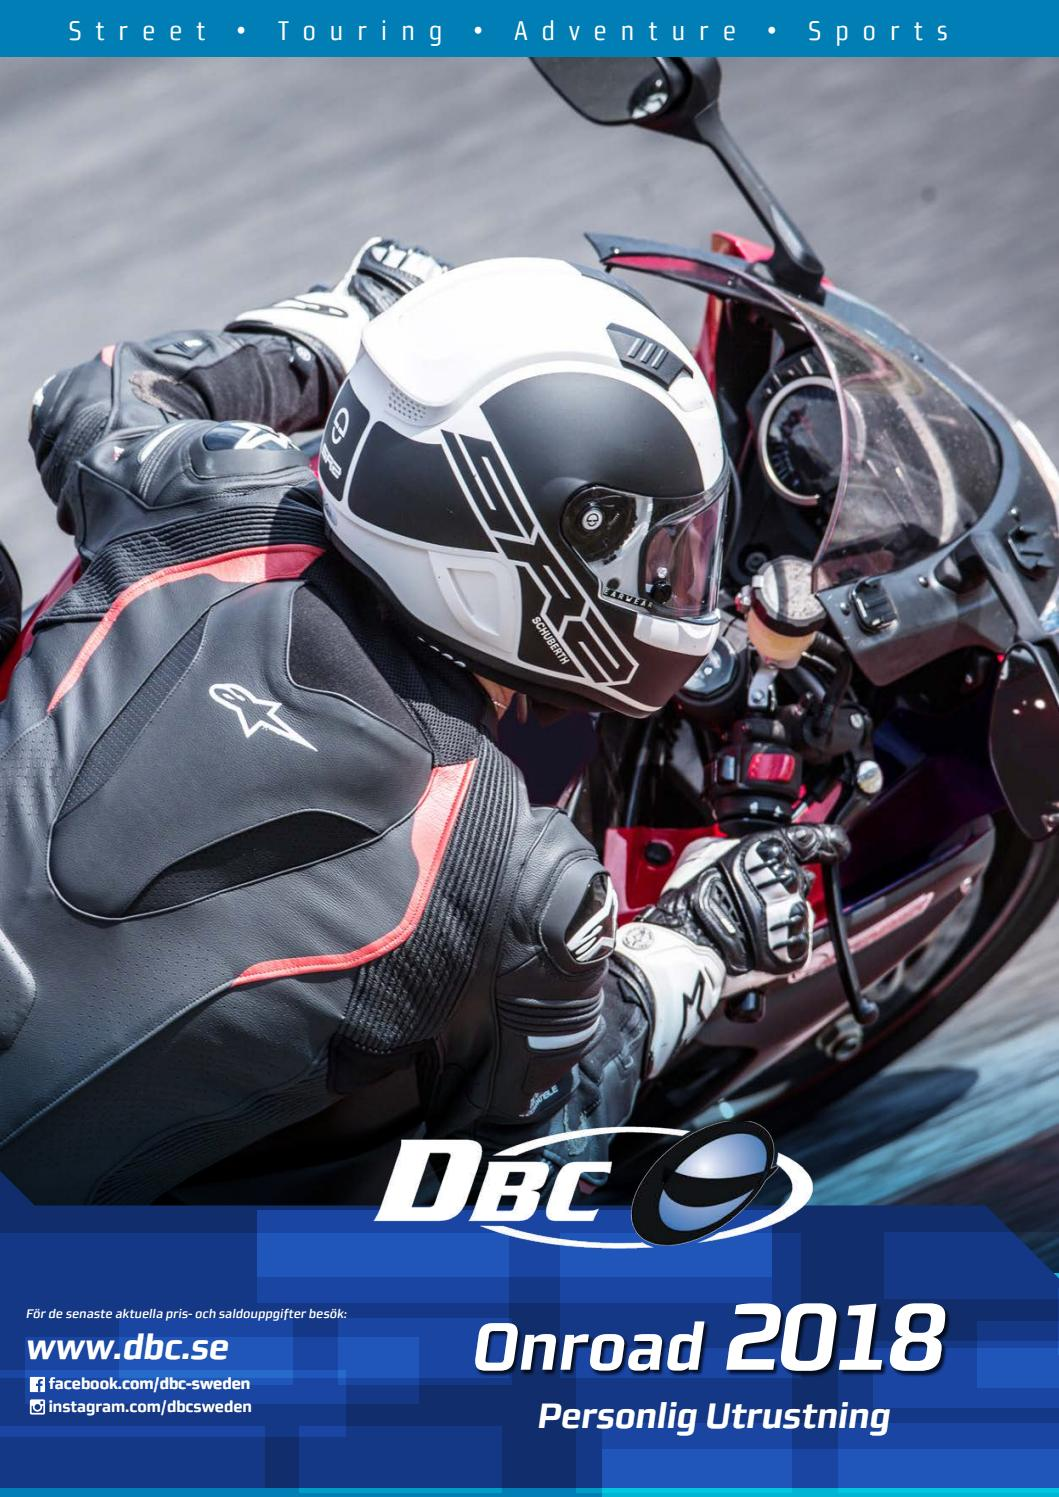 DBC Onroad2018 by Duell Bike-Center Oy - issuu aaf1d9f051705